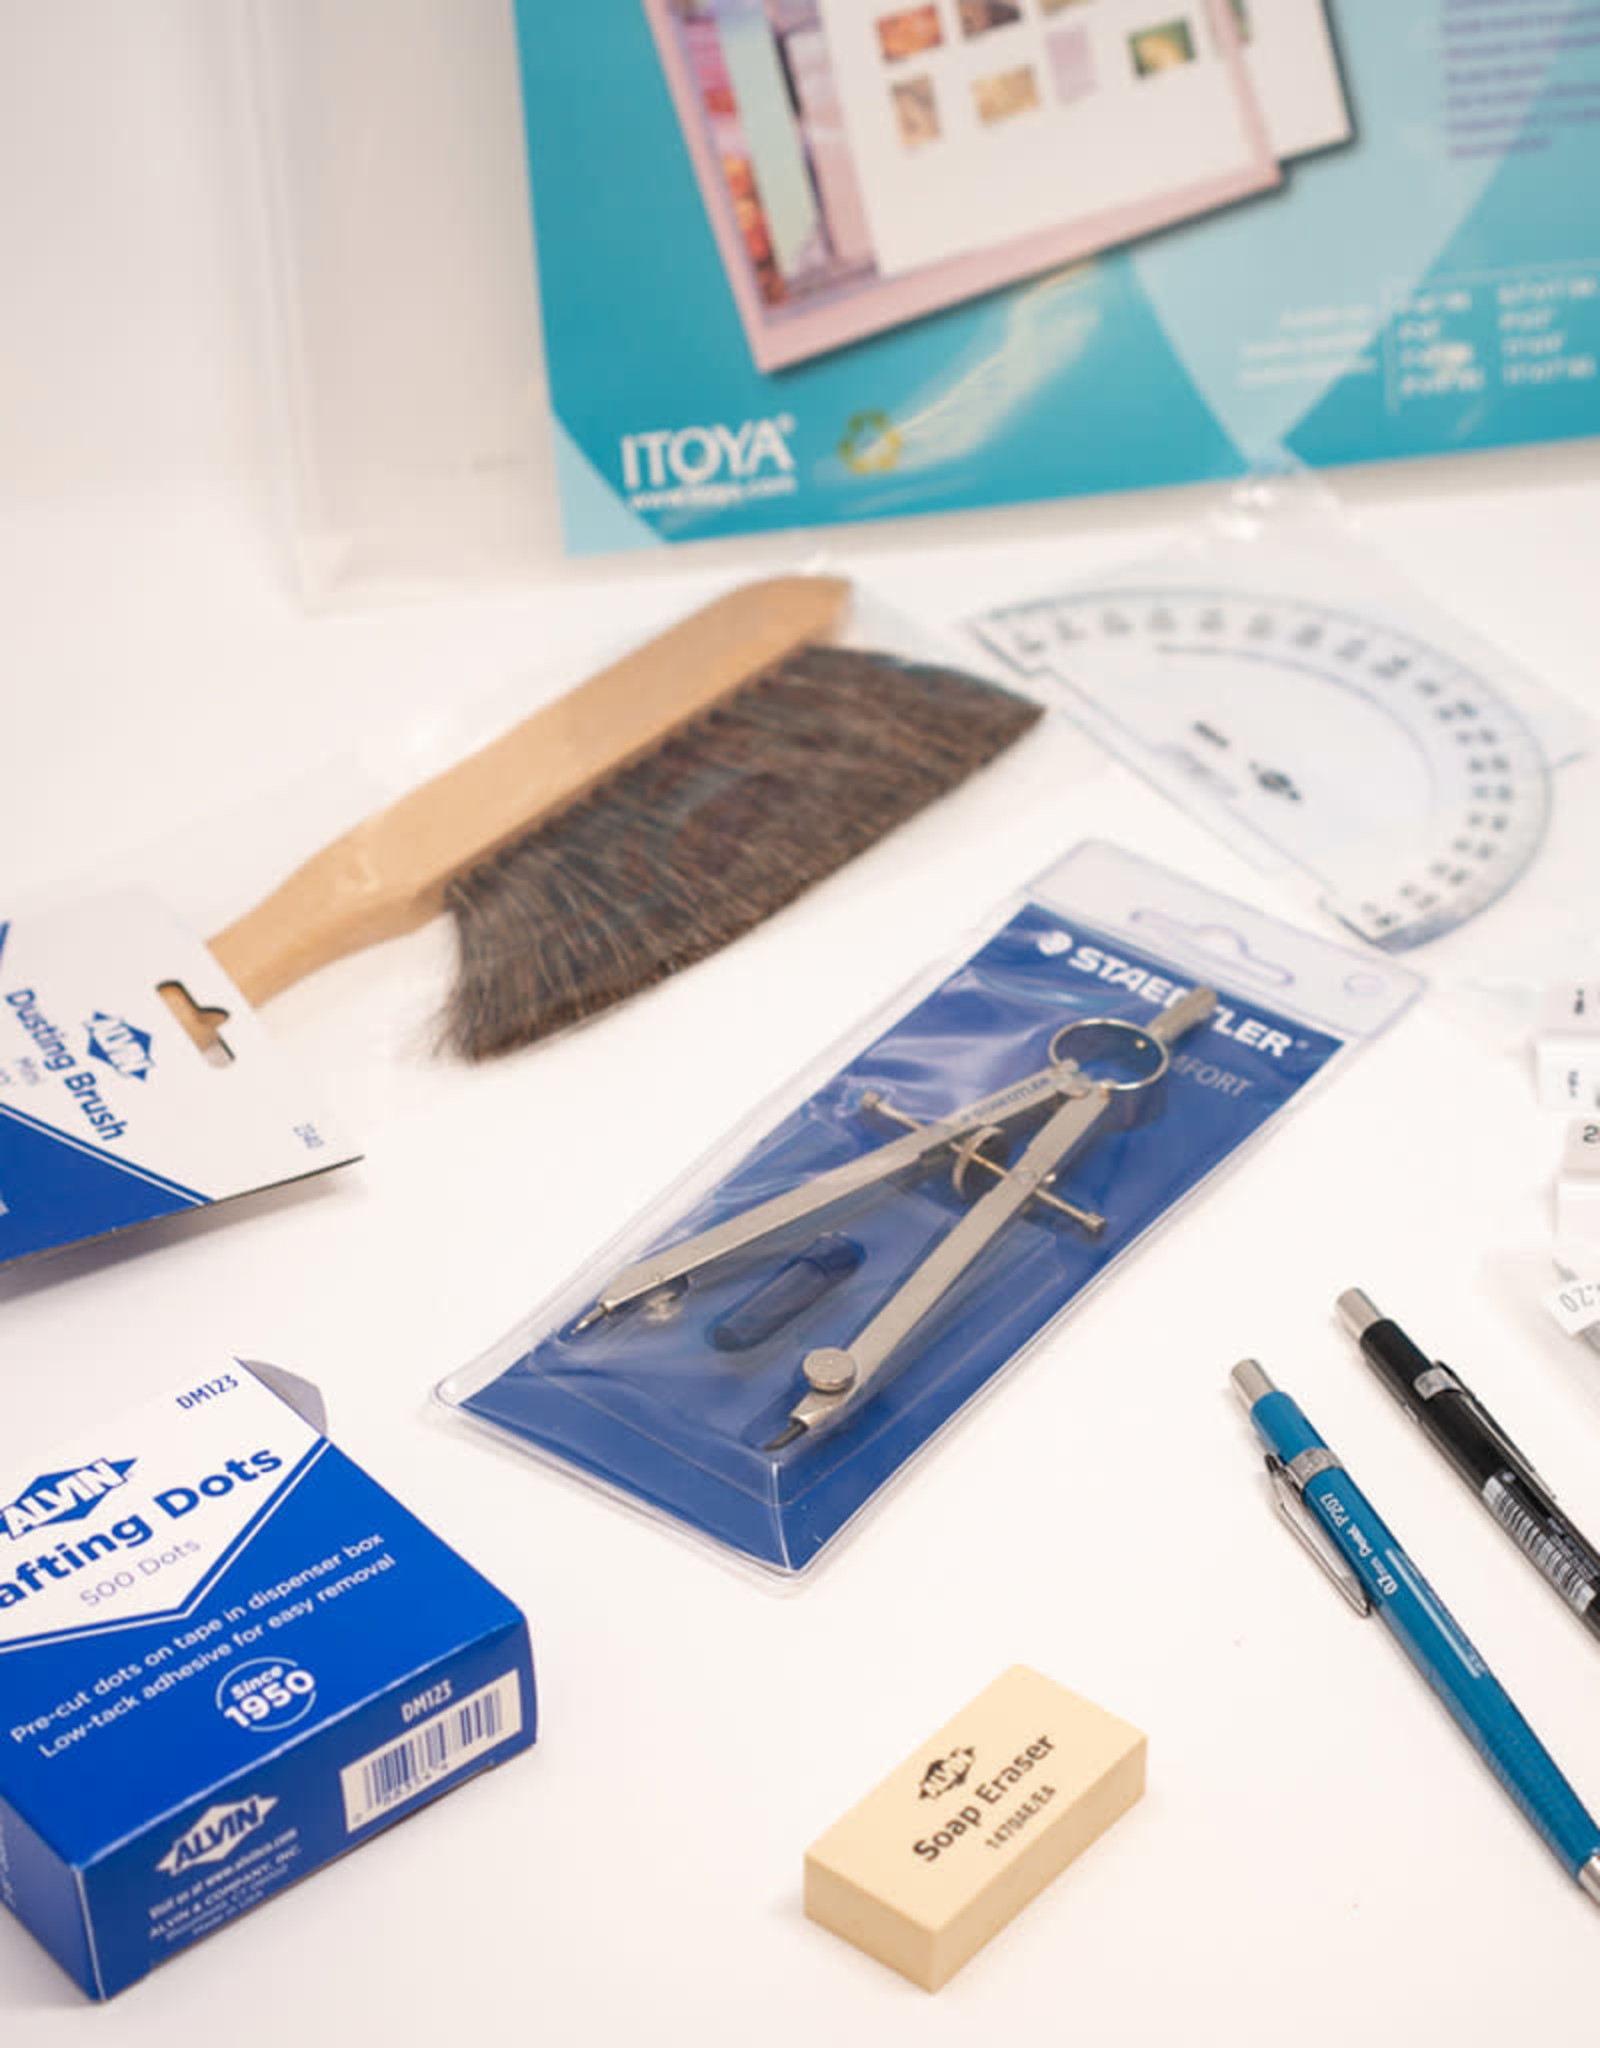 Drafting Kit With 0.9 Mm Pencil